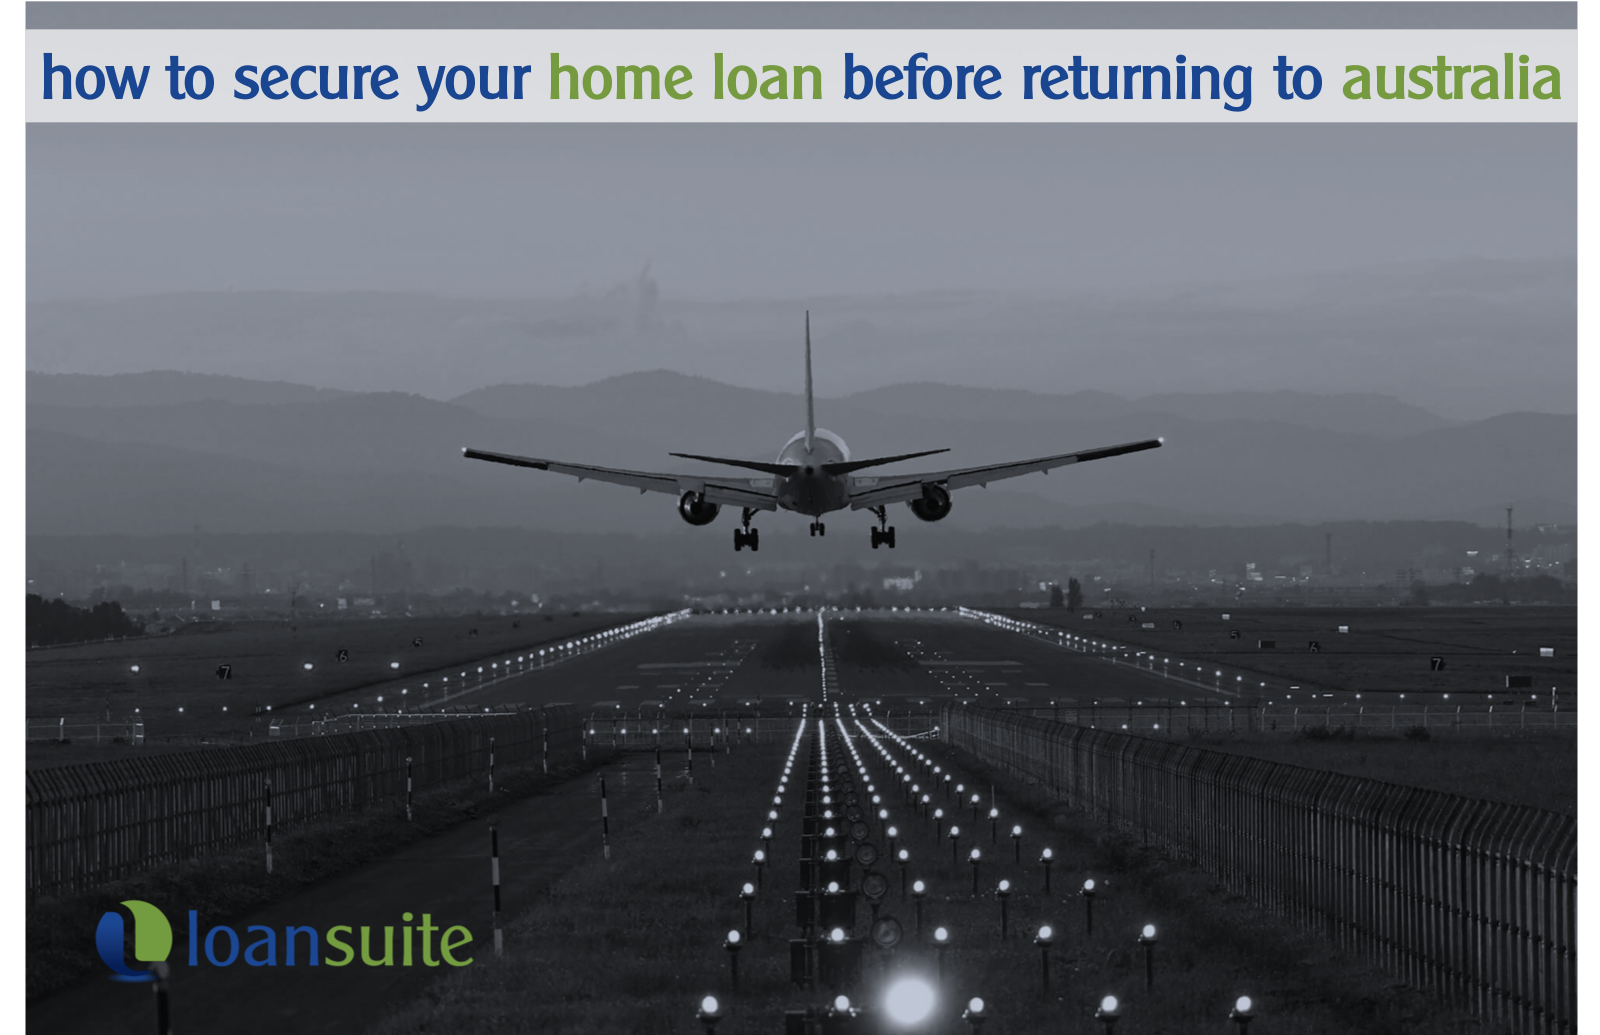 Can I Get a Home Loan Before Repatriating to Australia - Loansuite - Mortgage Brokers for Australian Expats